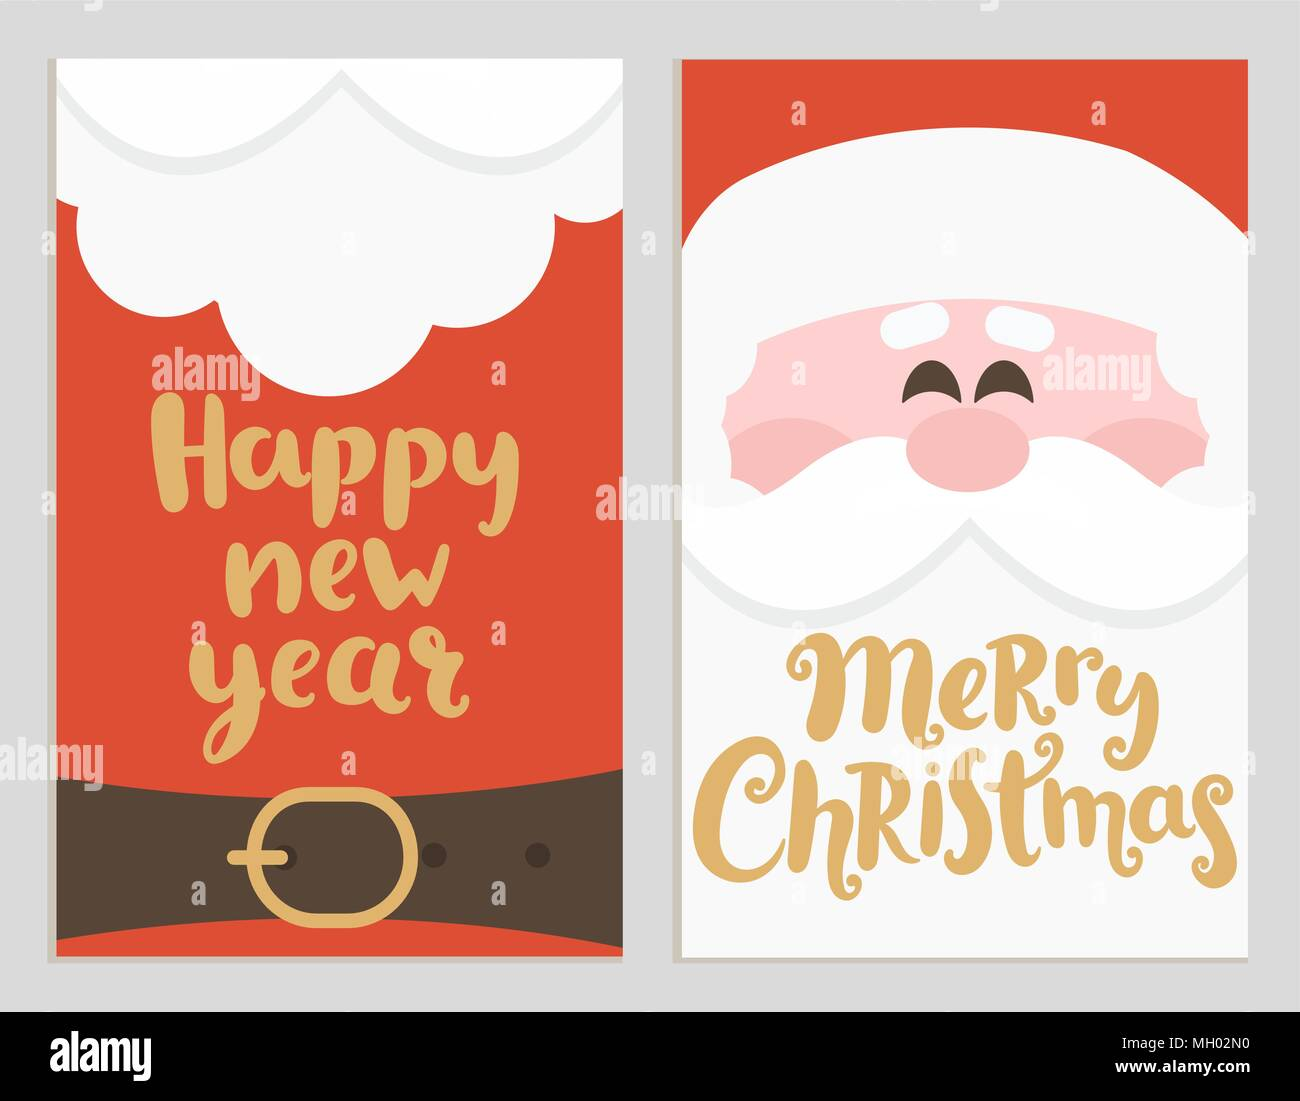 Santas Message Banners For Happy New Year And Merry Christmas